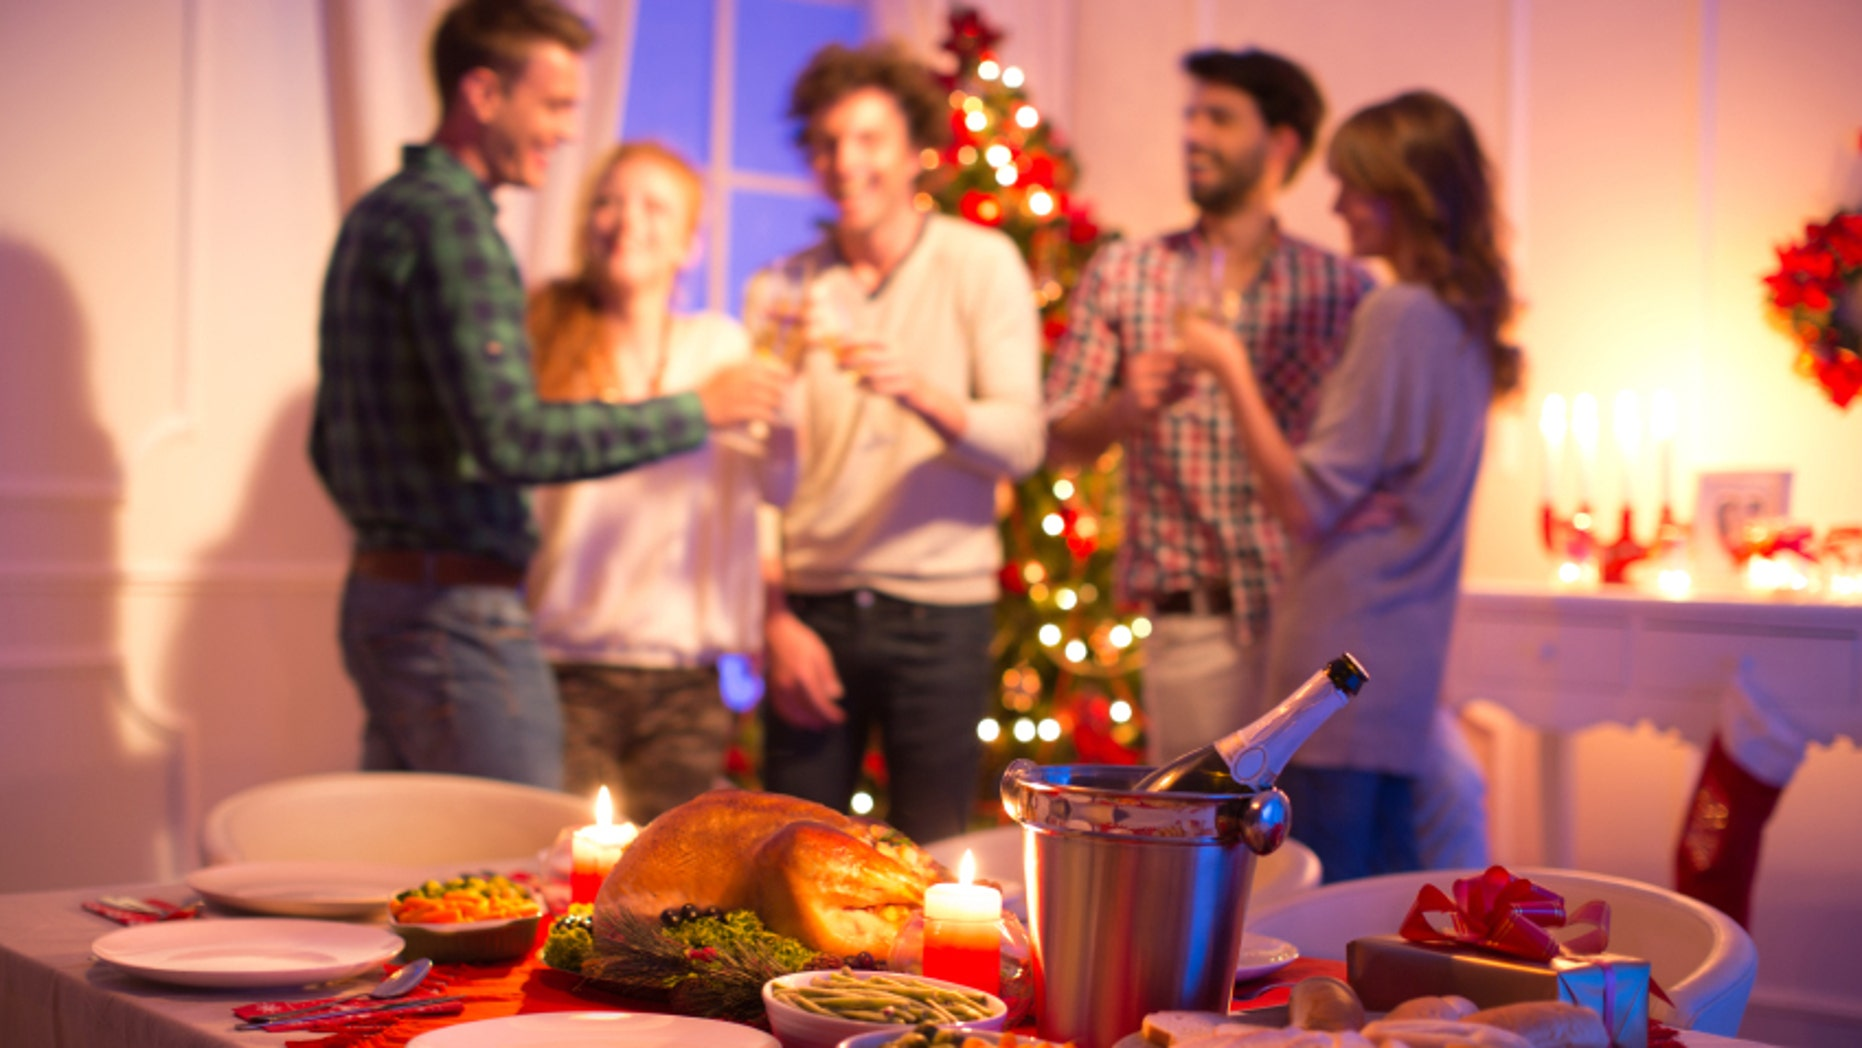 Keep the party going with these holiday hits.